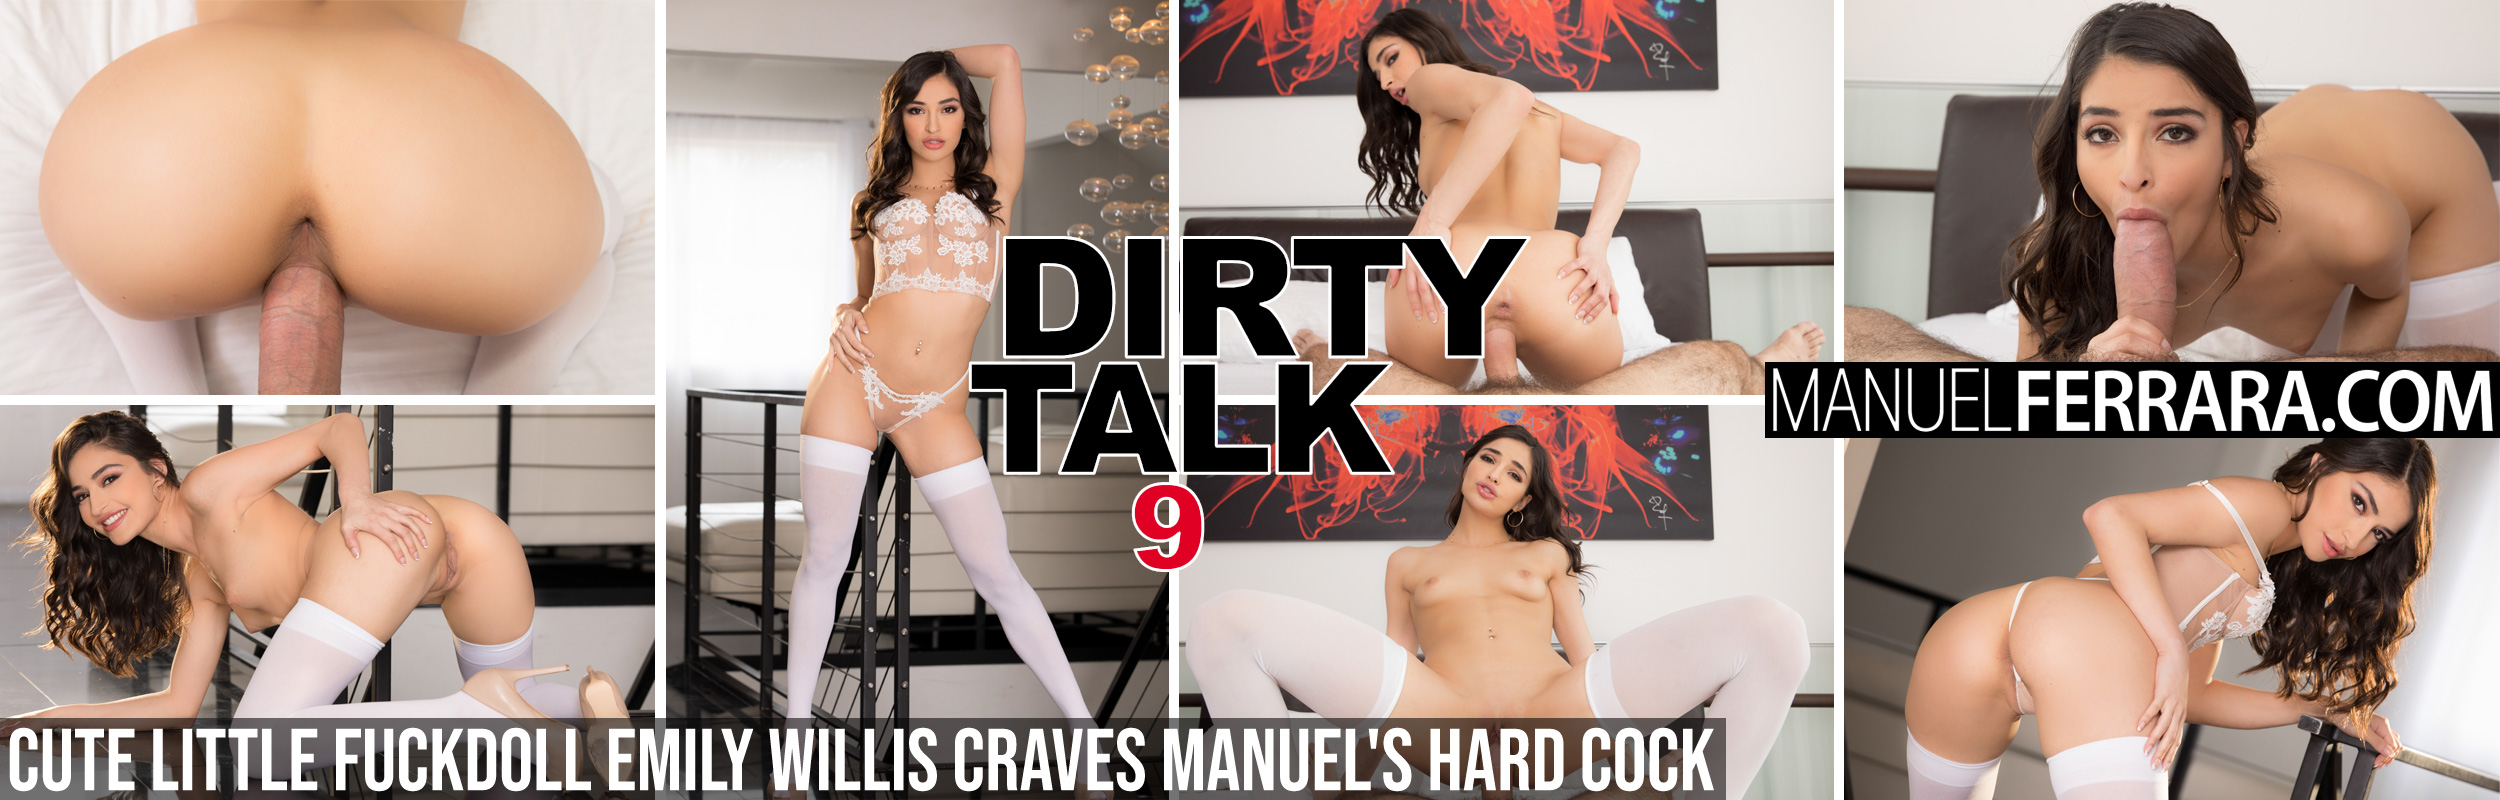 Cute Little Fuckdoll Emily Willis Craves Manuel's Hard Cock